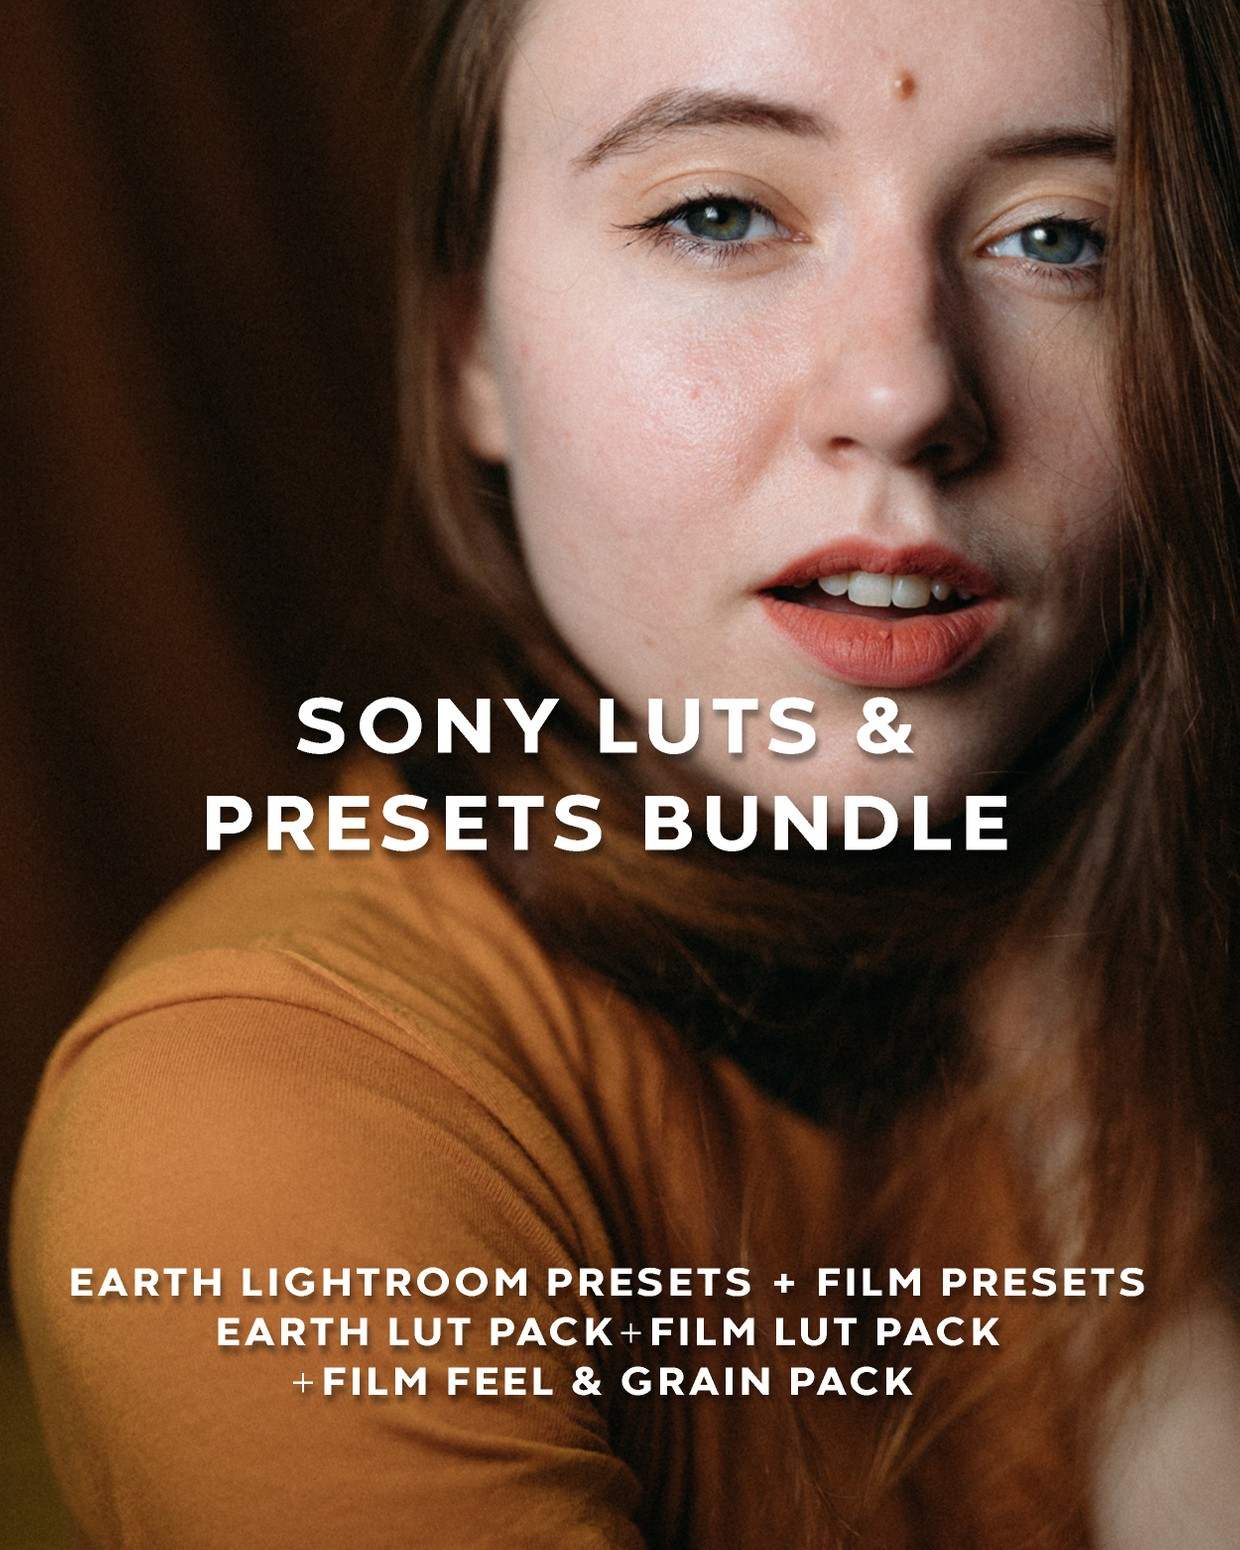 Sony ALPHA Cameras Earth LUTs & Presets Bundle